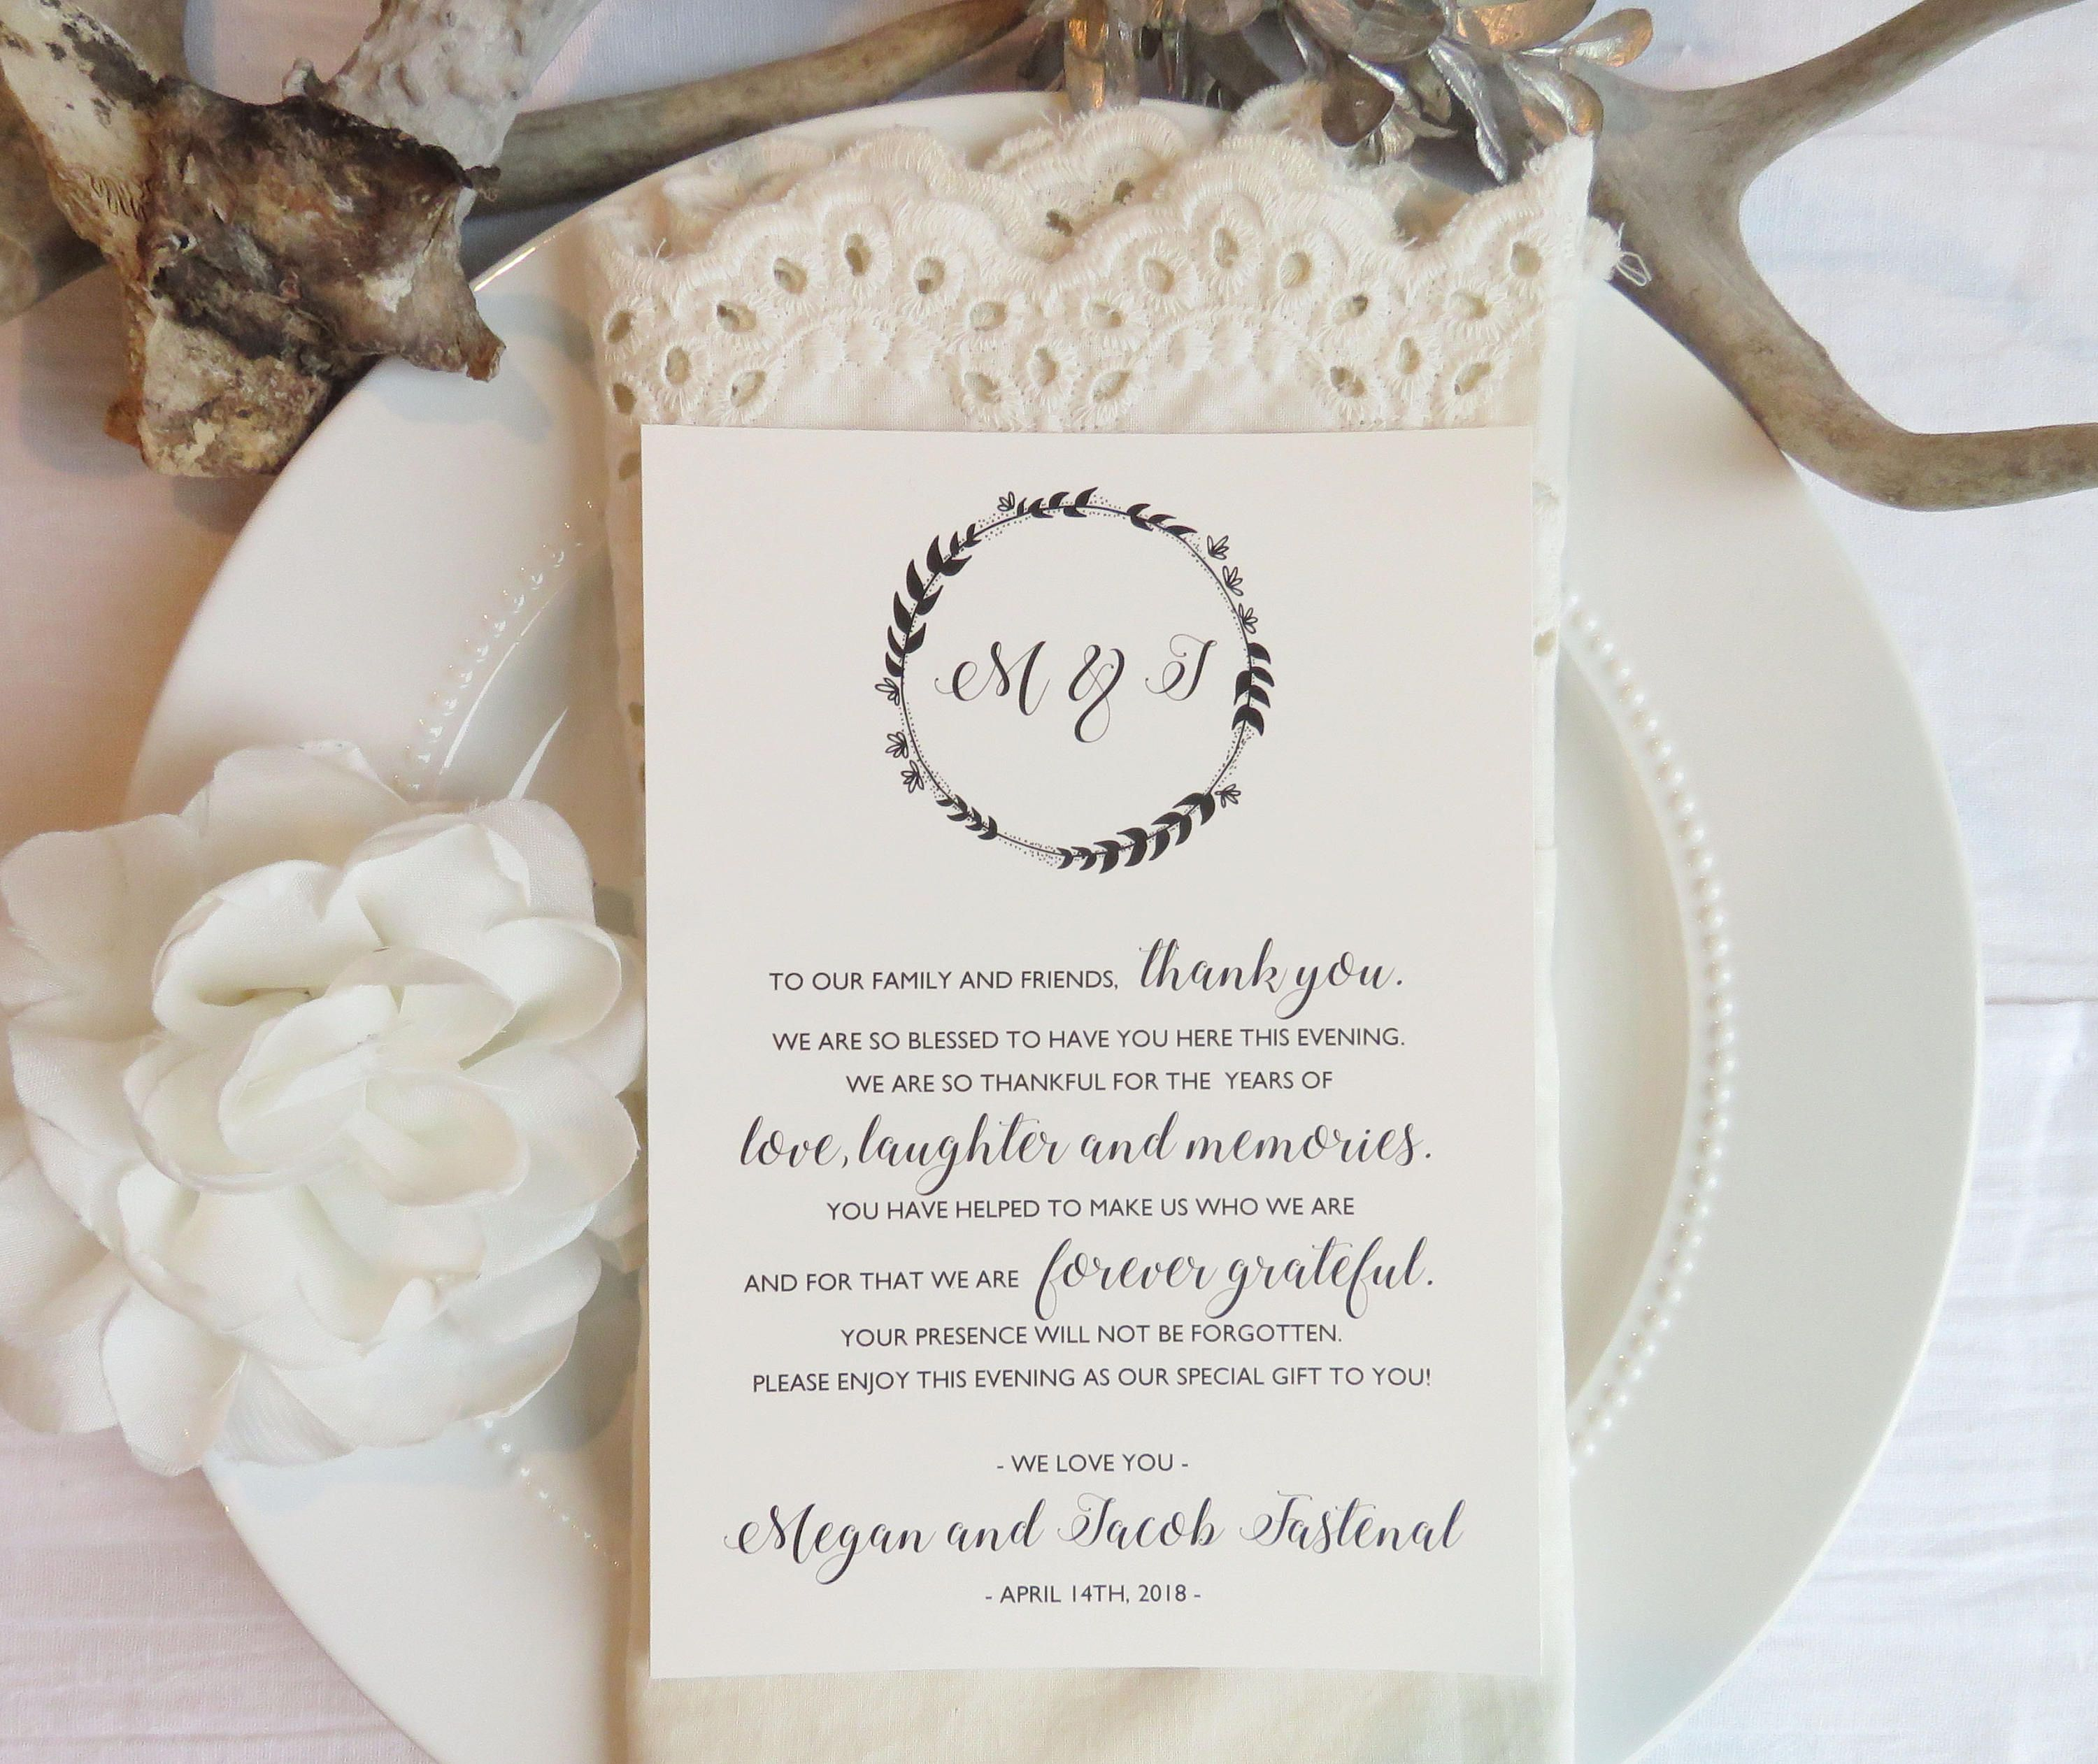 001 Singular Wedding Thank You Card Templates. High Def  Template Etsy Word PublisherFull